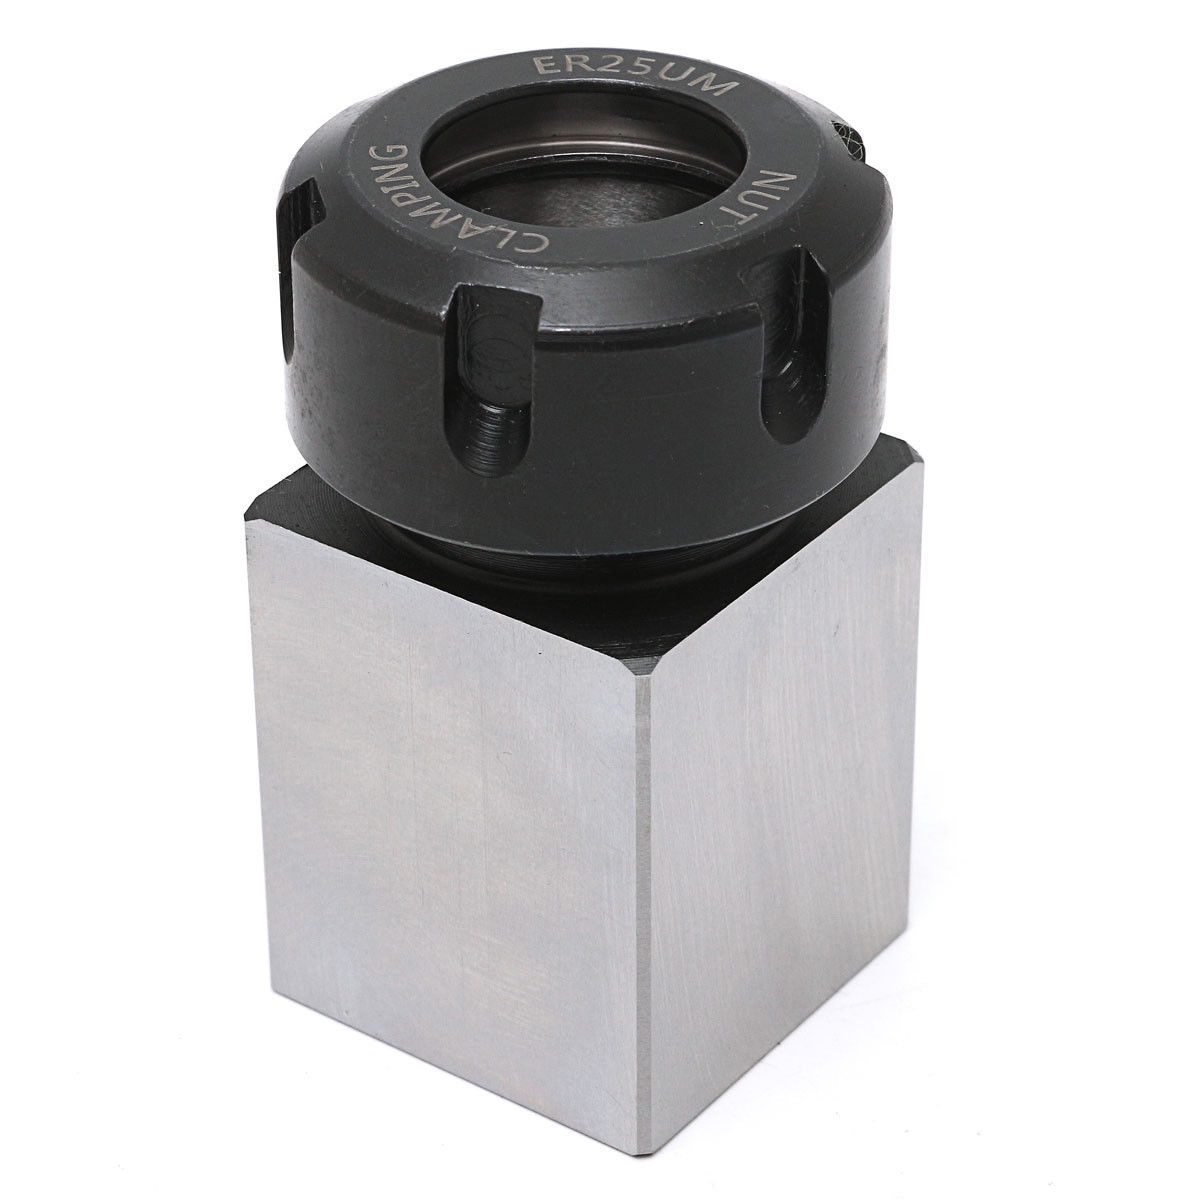 1pc ER-25 Square Collet Holder Hard Steel 3900-5123 Chuck Block 35x65mm For Lathe Engraving Machine 1pc square er40 collet chuck block holder 3900 5125 for cnc lathe engraving machine cross hole drilling